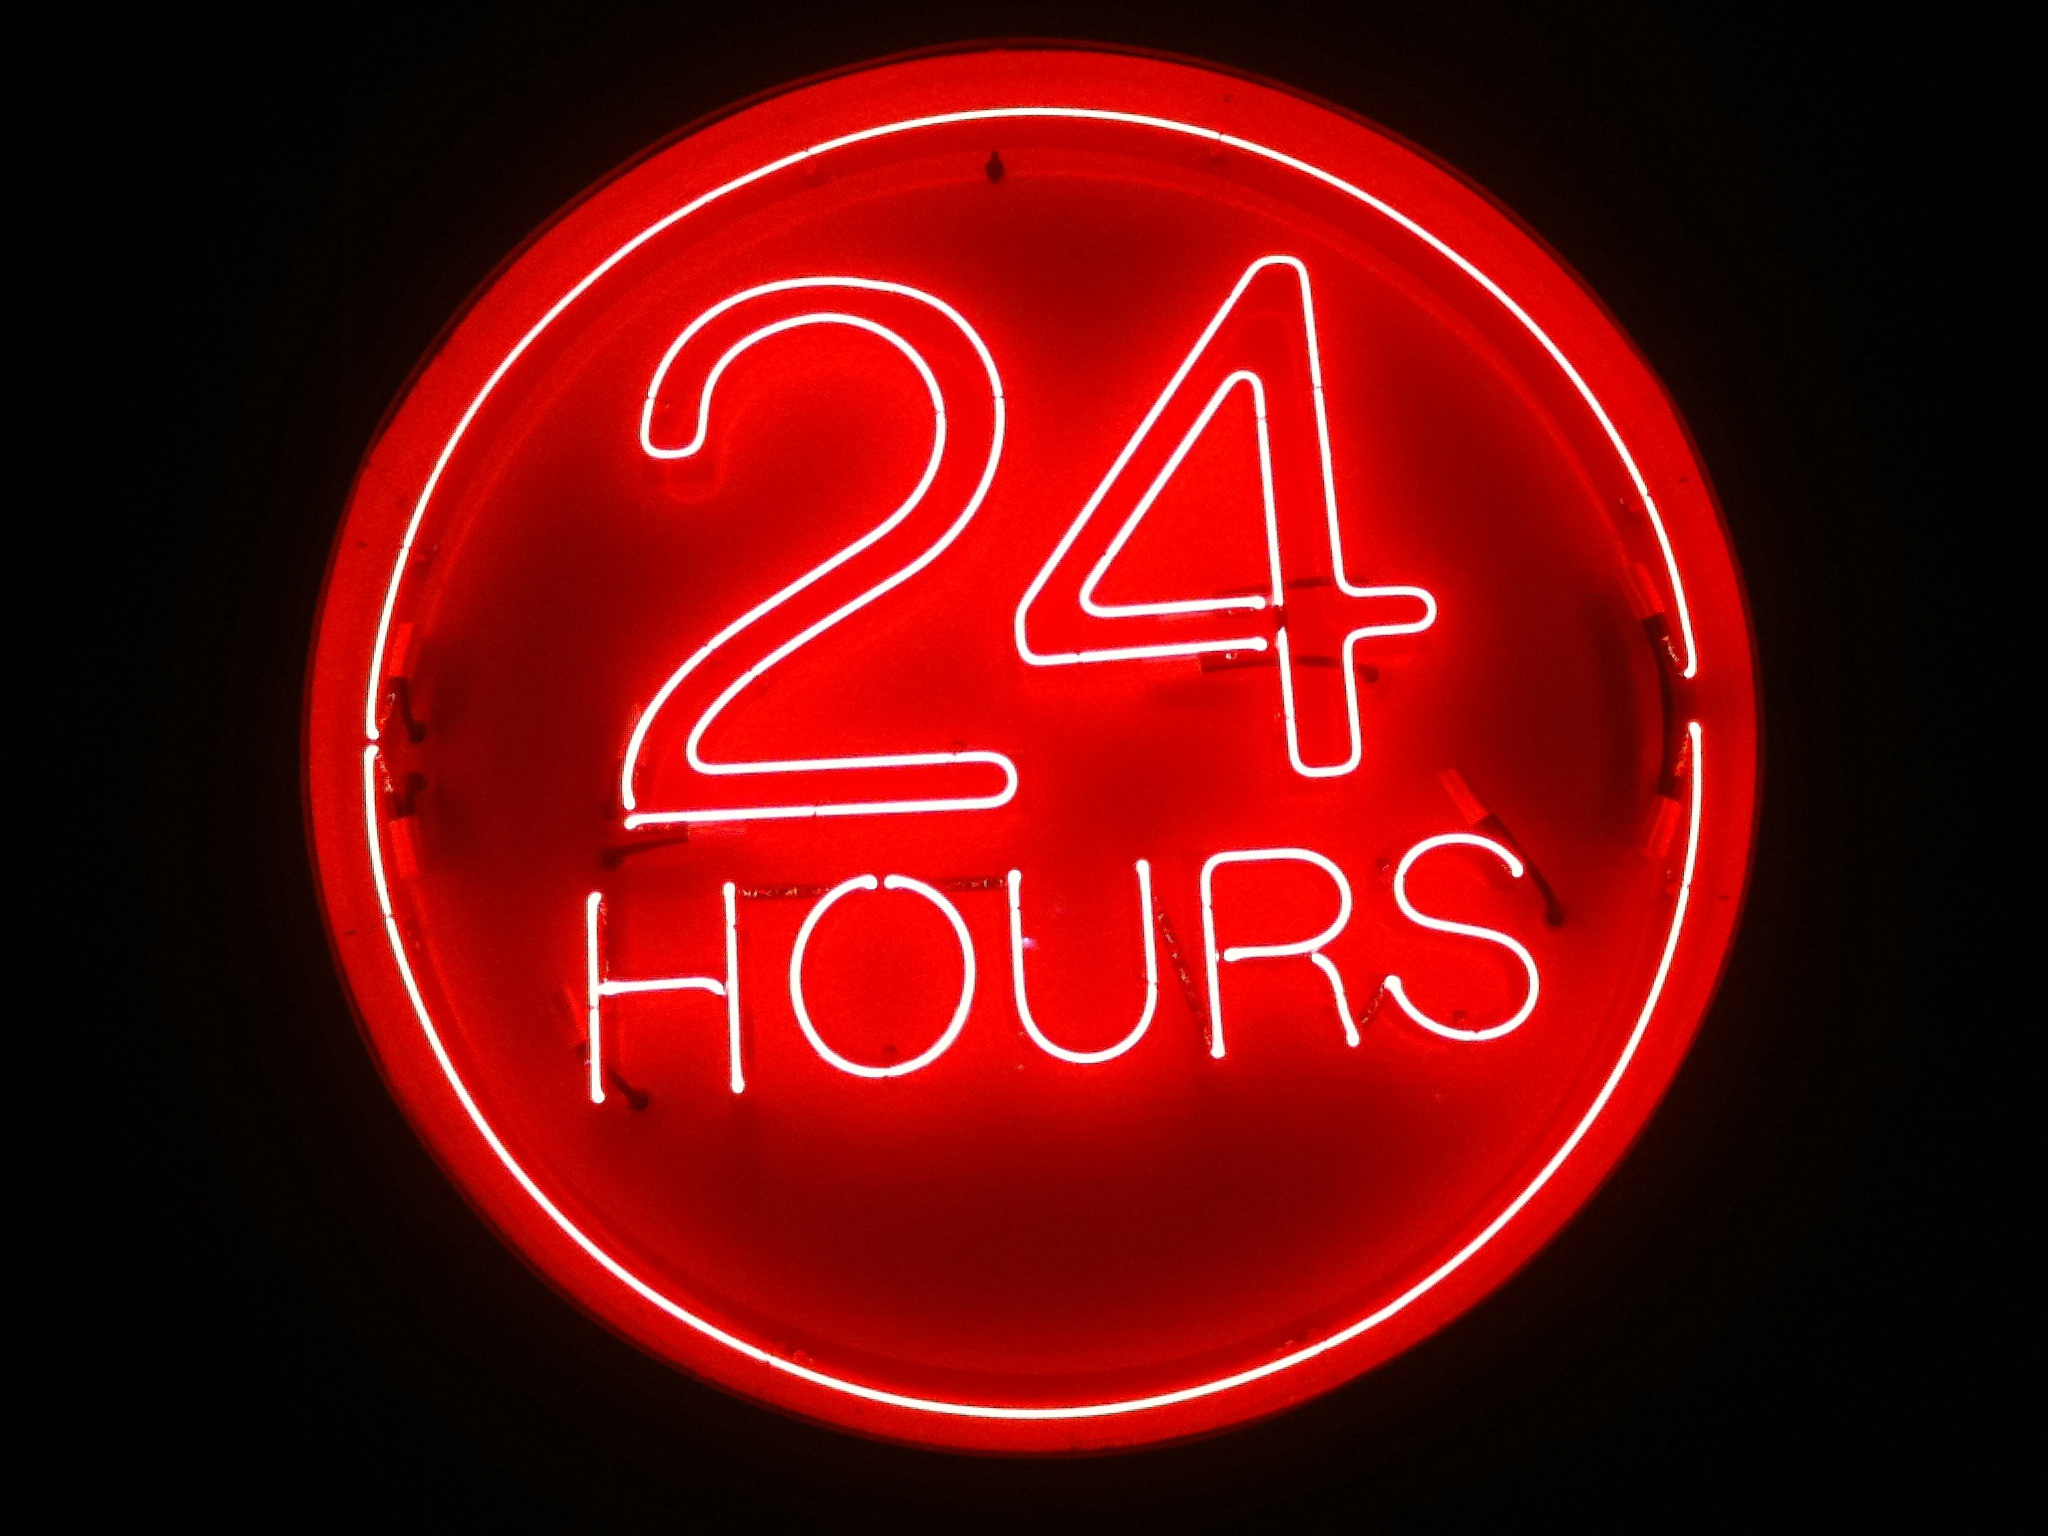 24 hours neon Sign | © Mike Mozart/Flickr